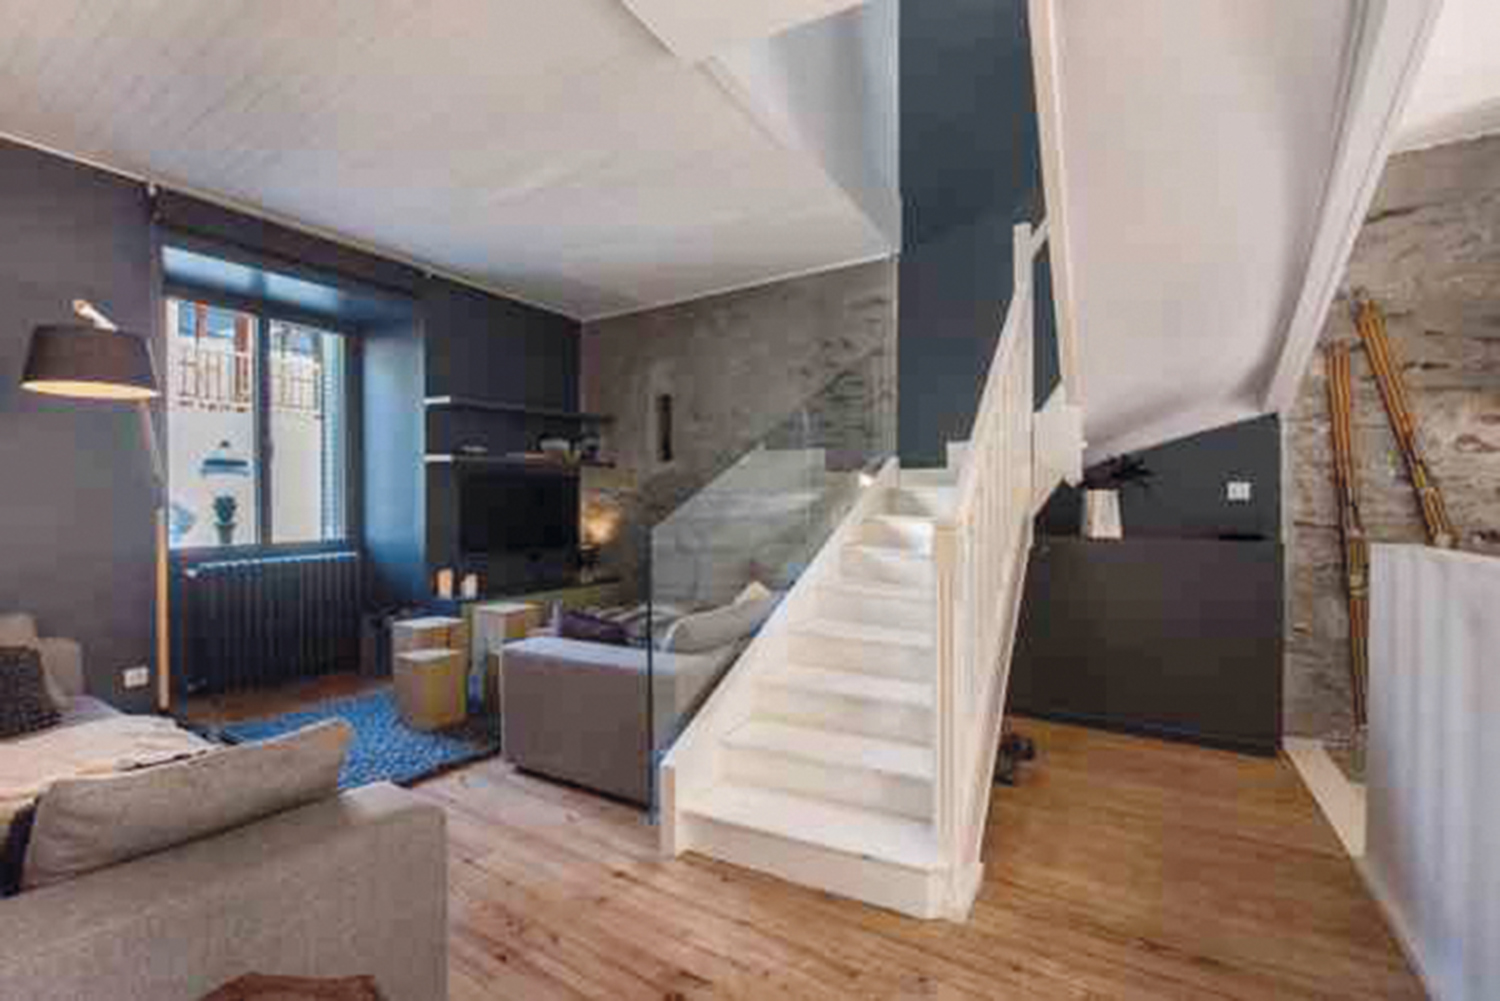 salon-pyreneen-renovation-architecture-montagne-bigorre-mag-1